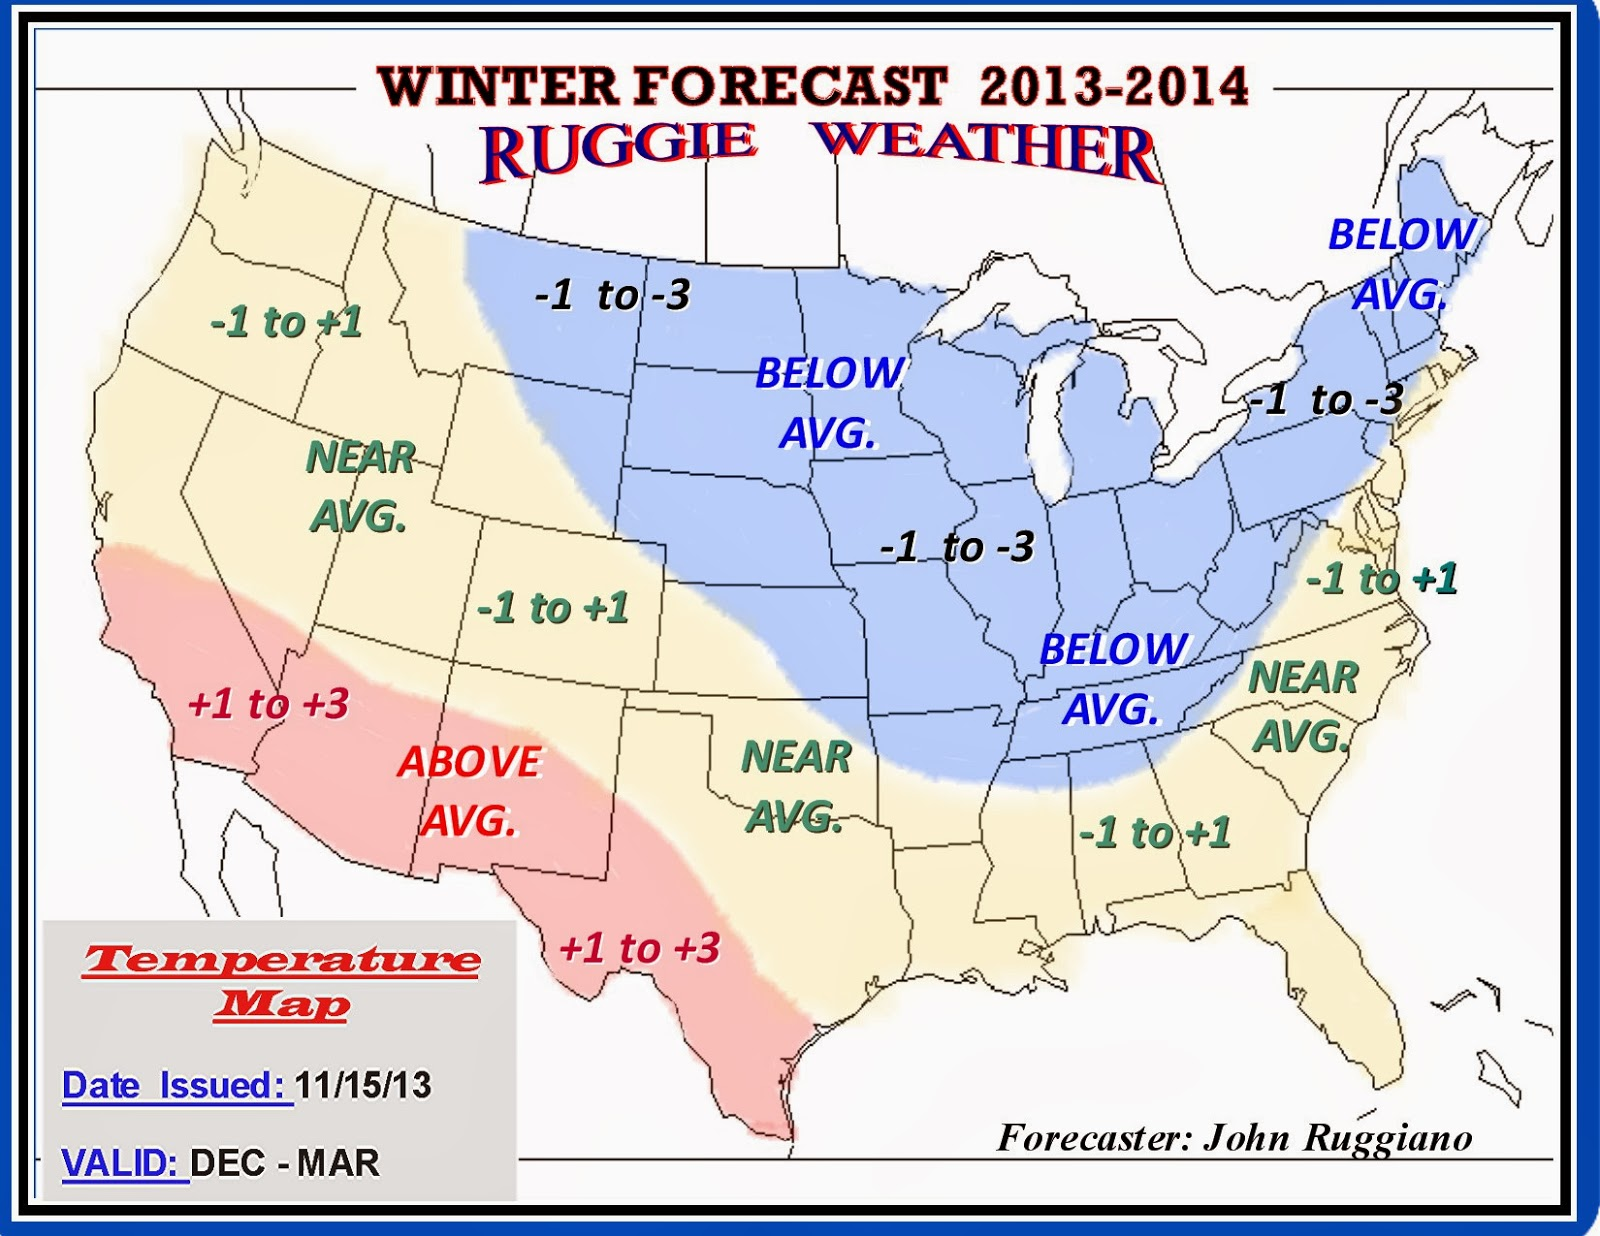 My Forecast Maps: For the 2013-2014Winter Season.